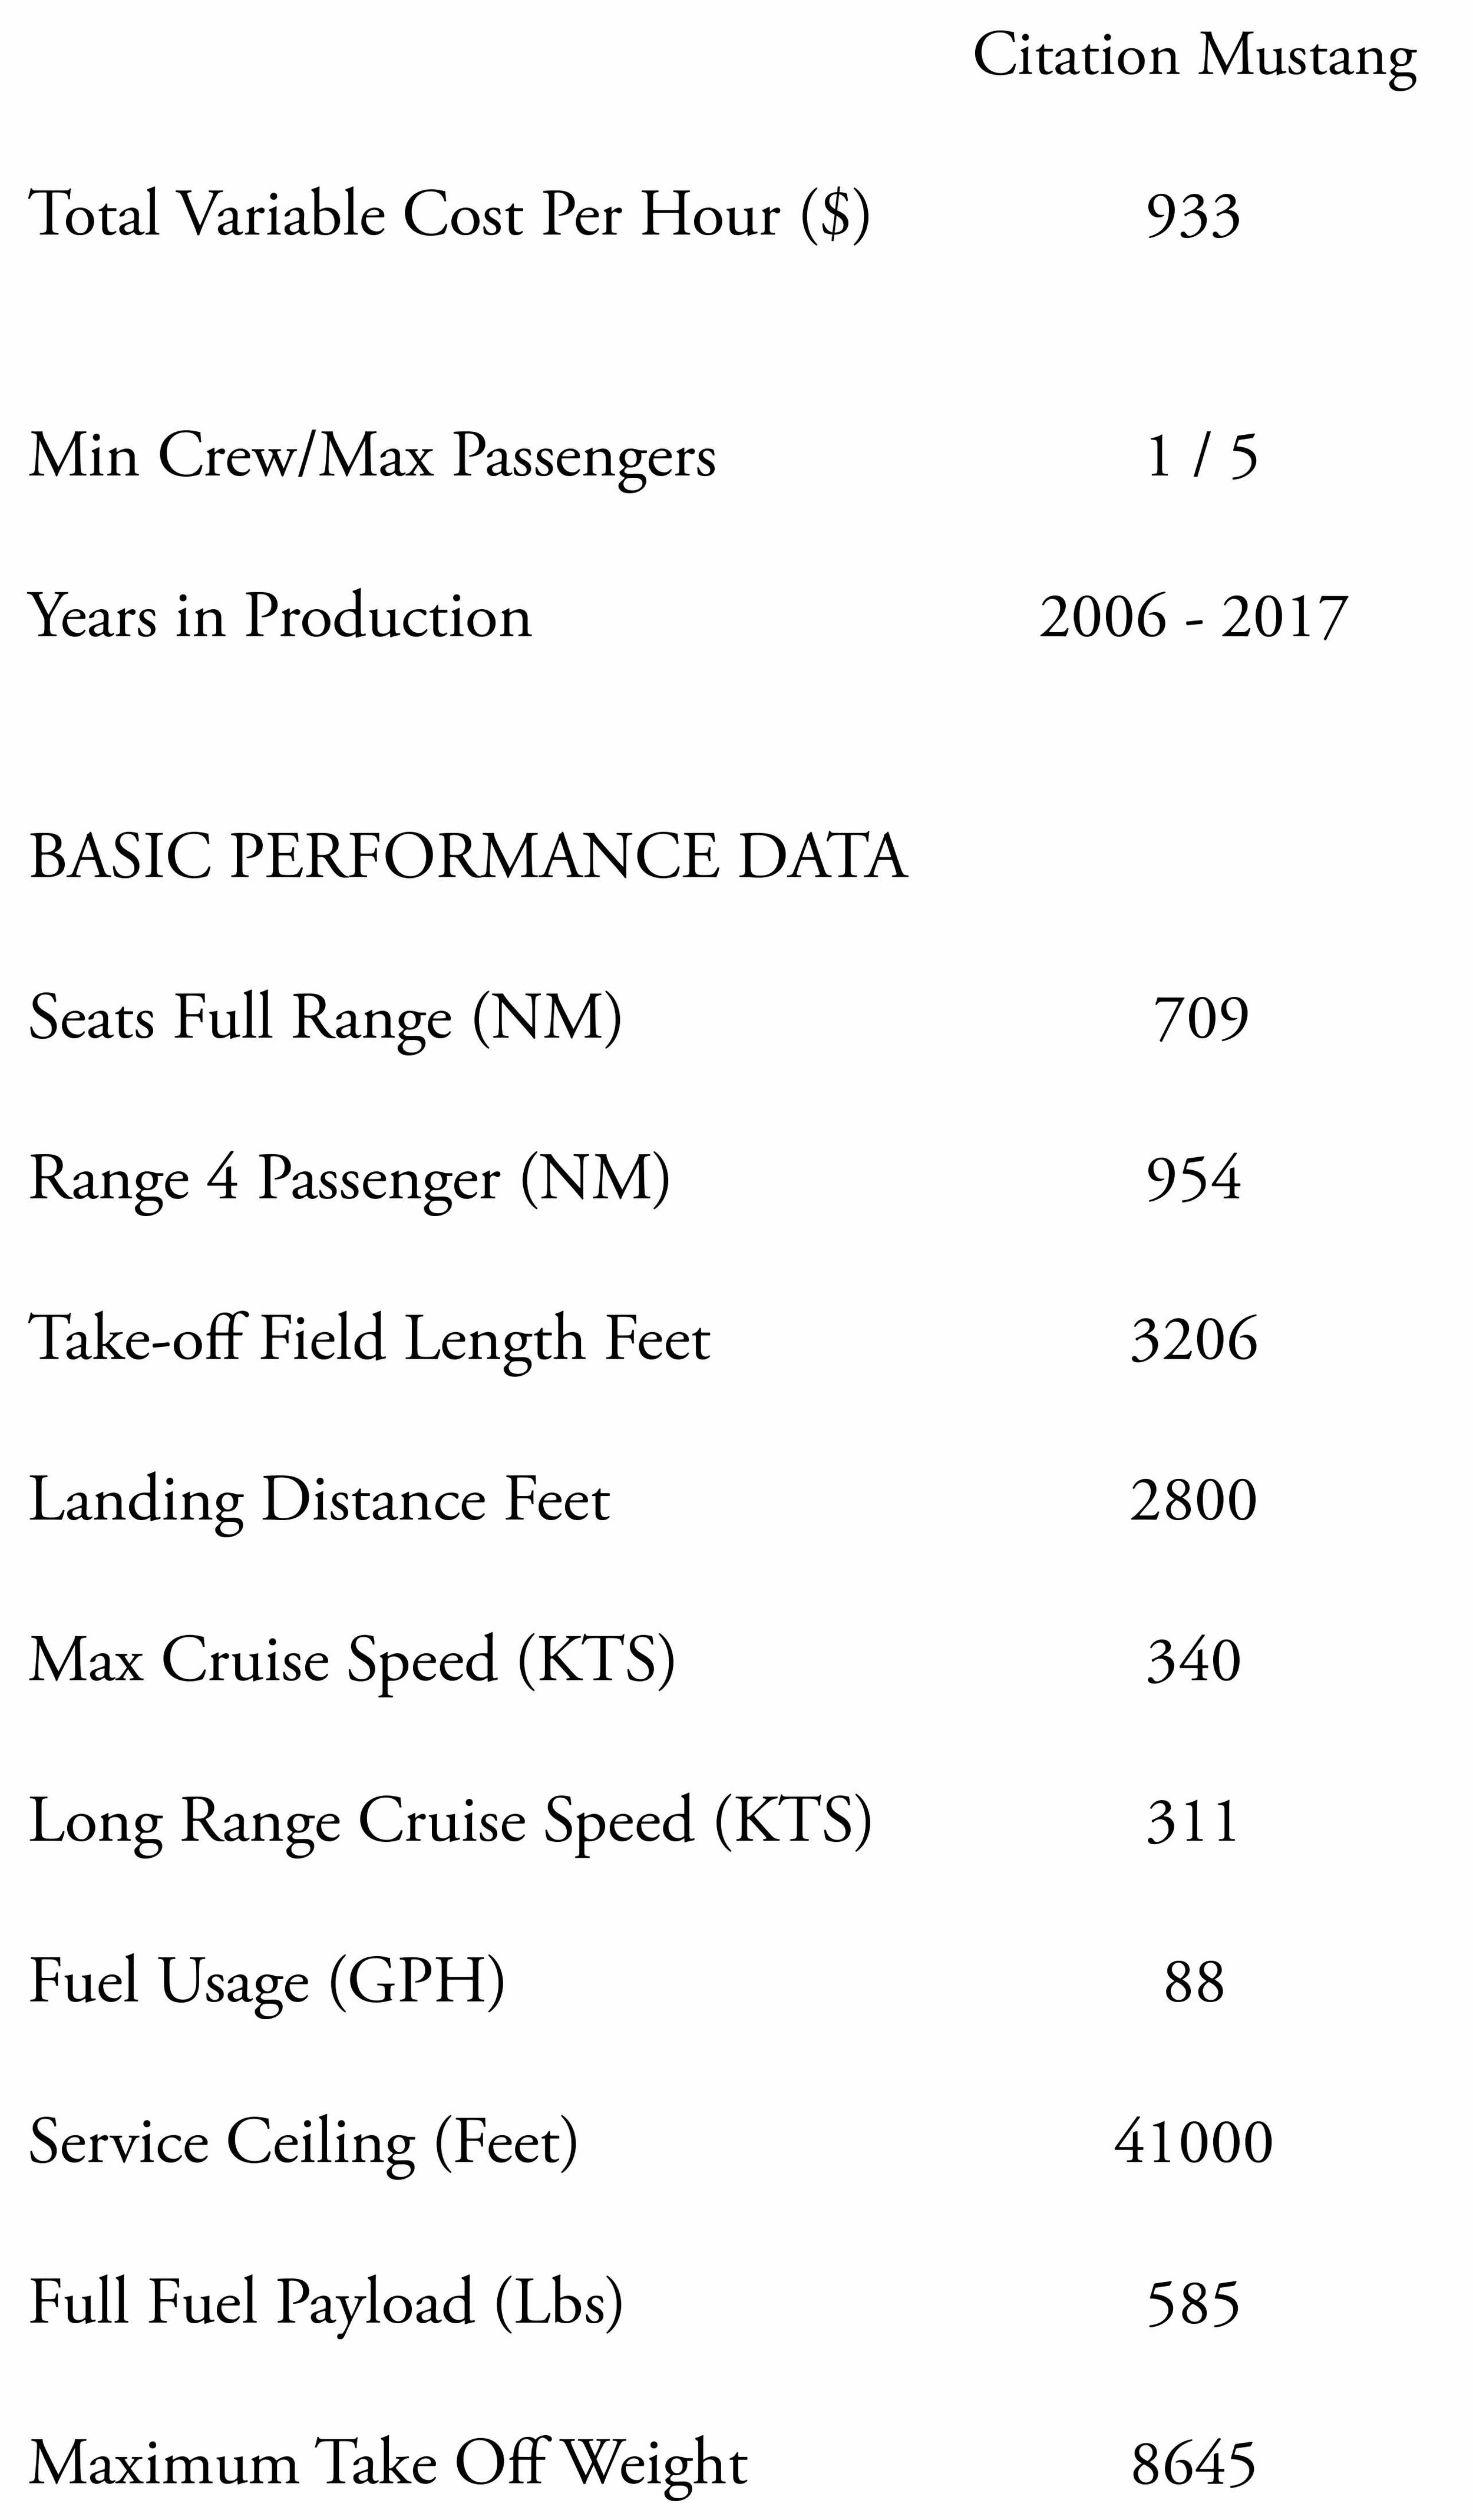 Citation Mustang jet specs, information, ownership costs, variable costs, crew/passenger ration, flight range distance.